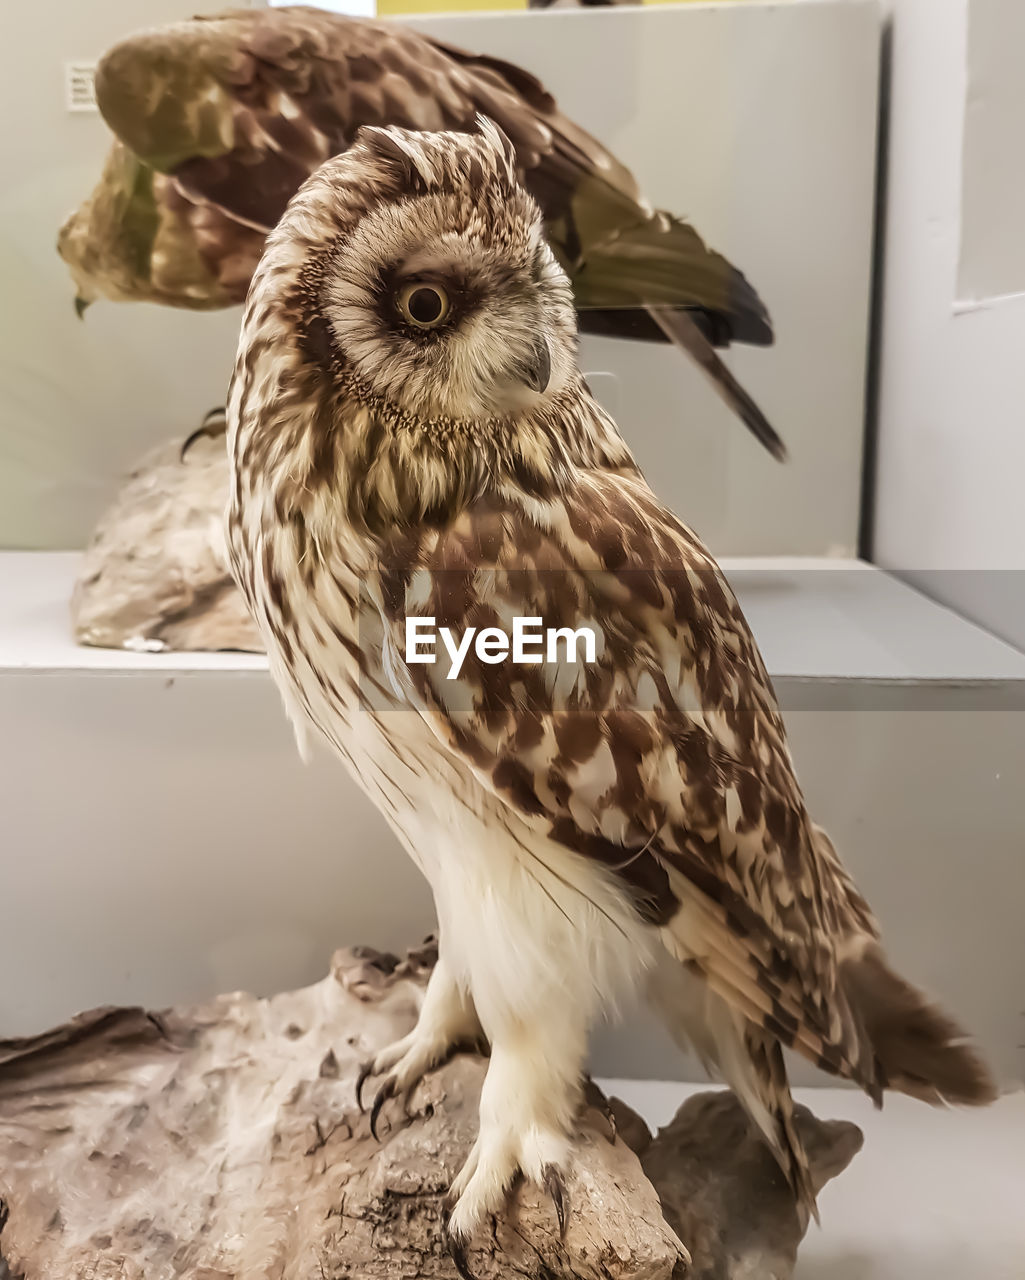 one animal, vertebrate, bird, indoors, close-up, no people, bird of prey, animal wildlife, animals in the wild, focus on foreground, owl, day, home interior, feather, looking at camera, portrait, domestic, animal eye